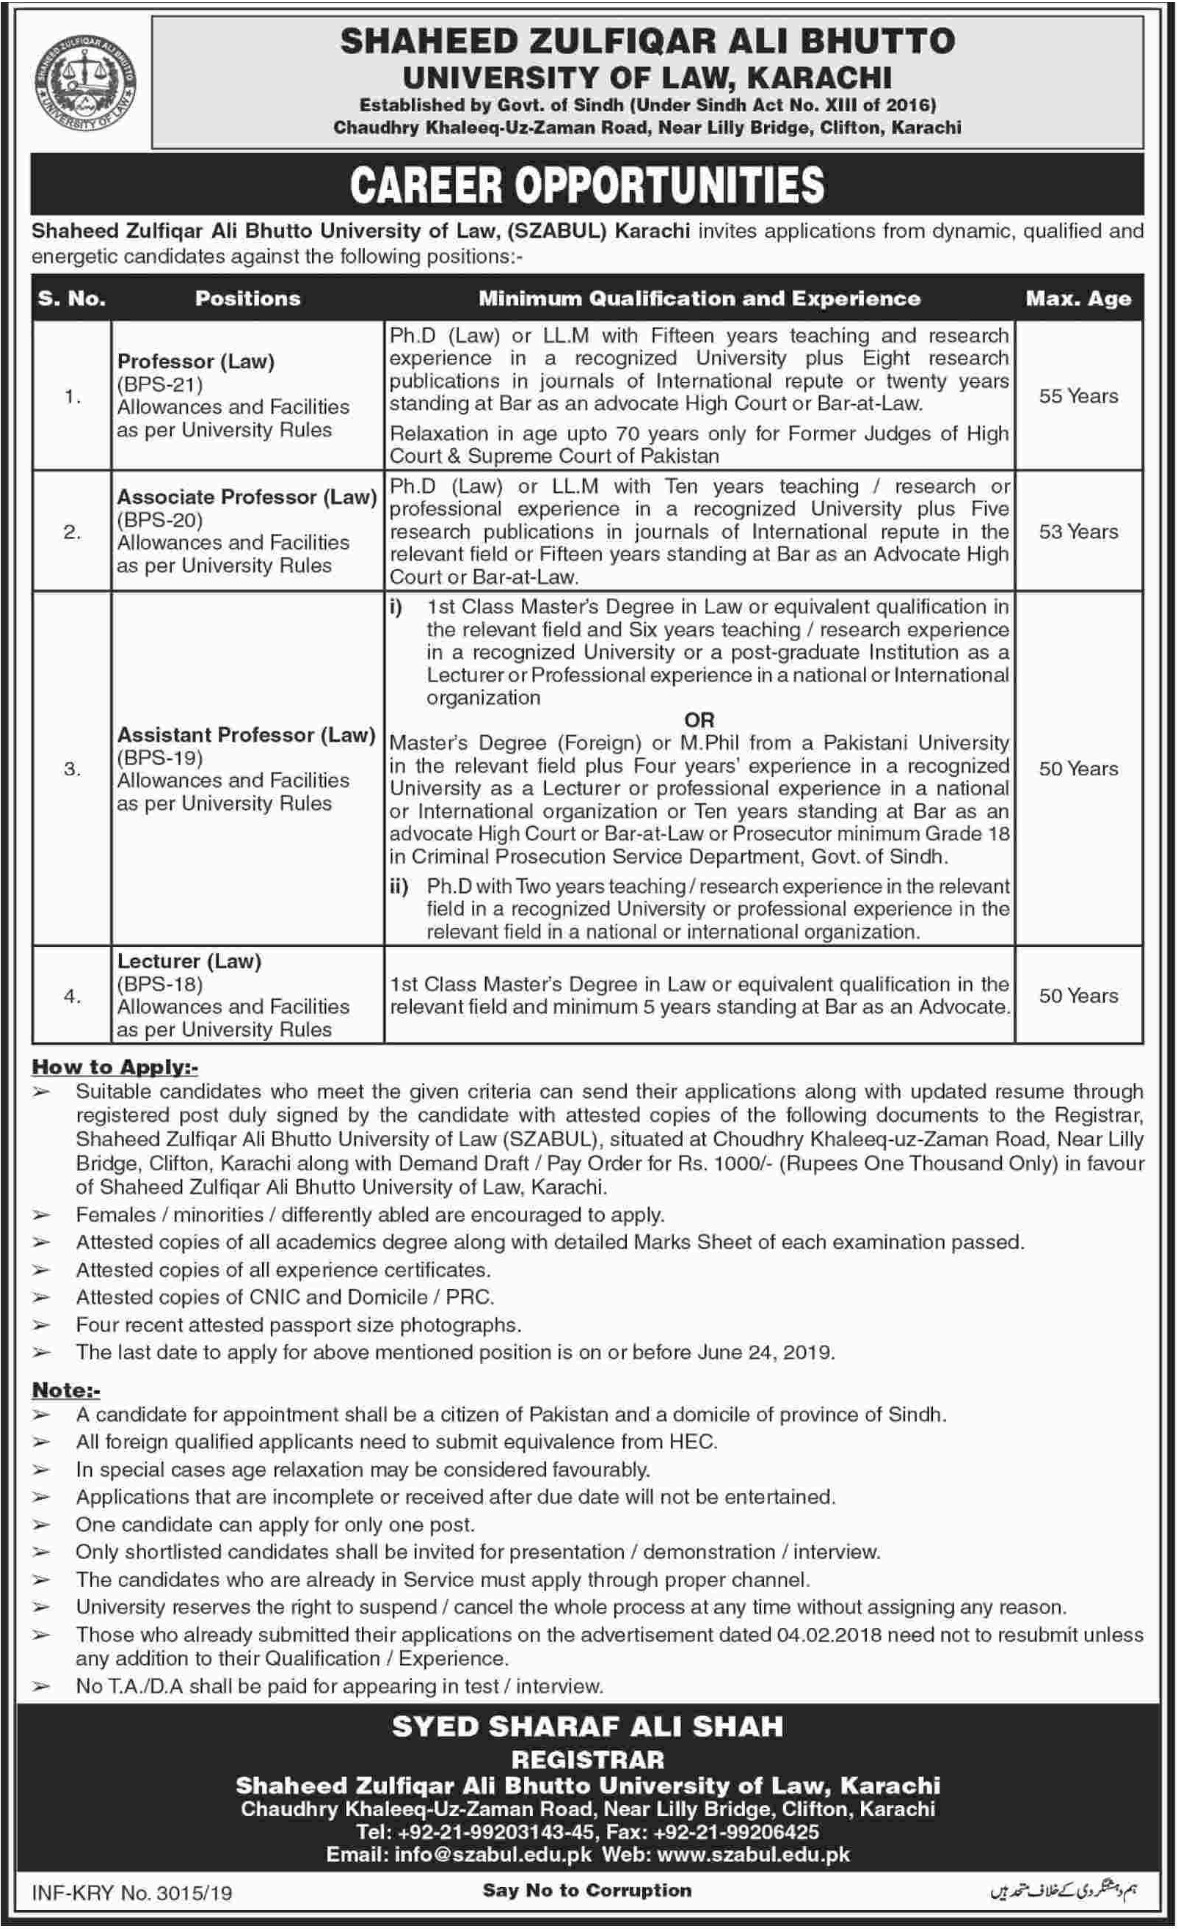 Shaheed Zulfiqar Ali Bhutto University of Law Karachi Jobs 2019 Sindh